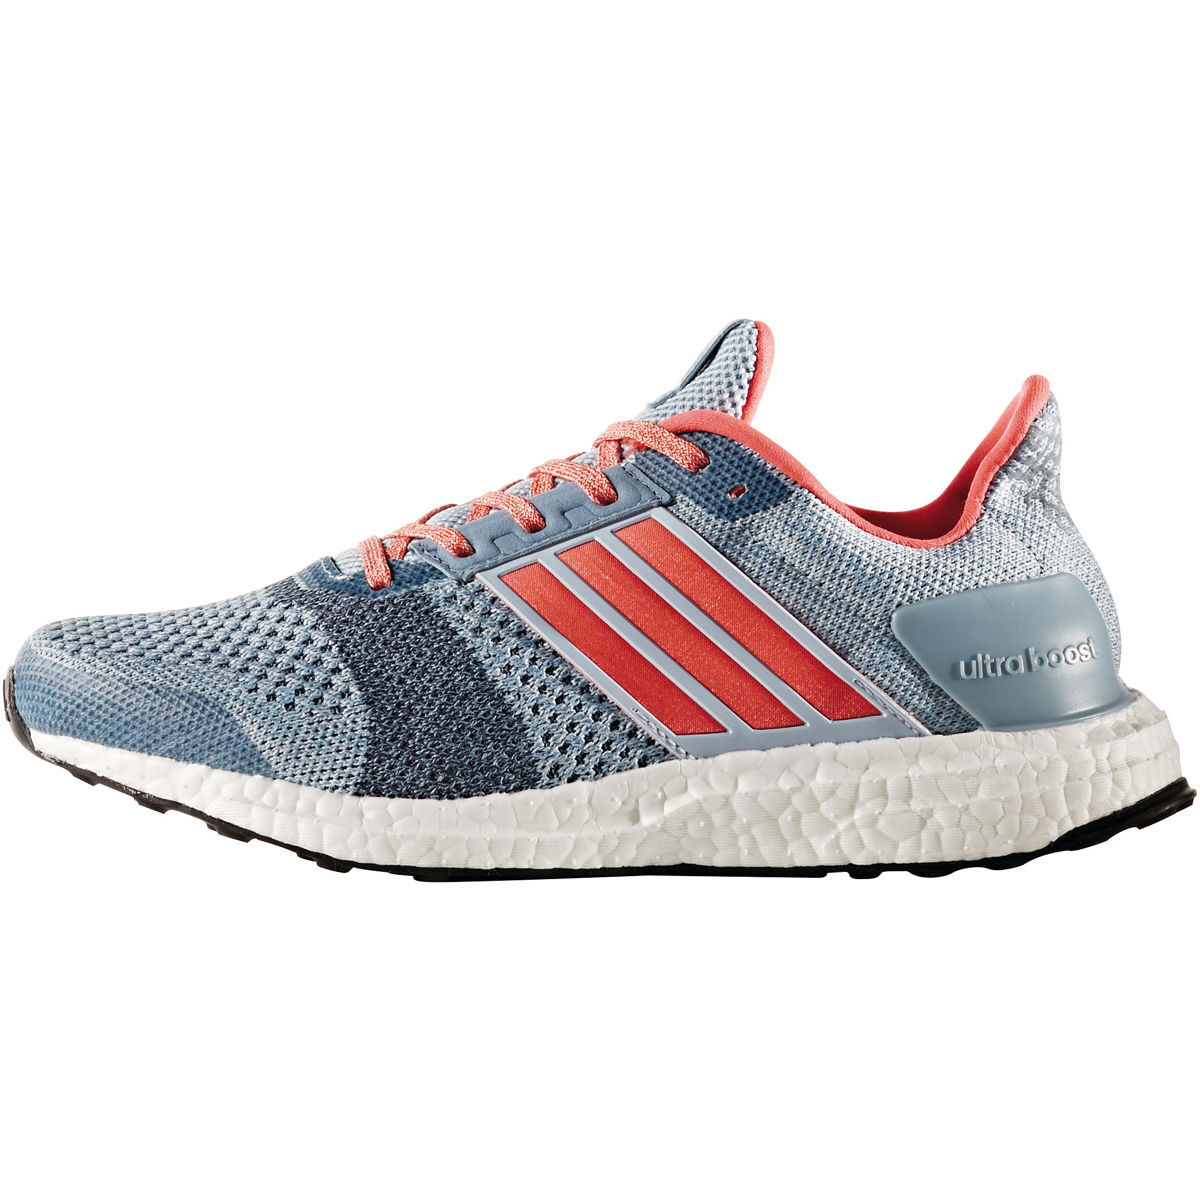 adidas ultra boost st torsion damen runningschuh blau. Black Bedroom Furniture Sets. Home Design Ideas